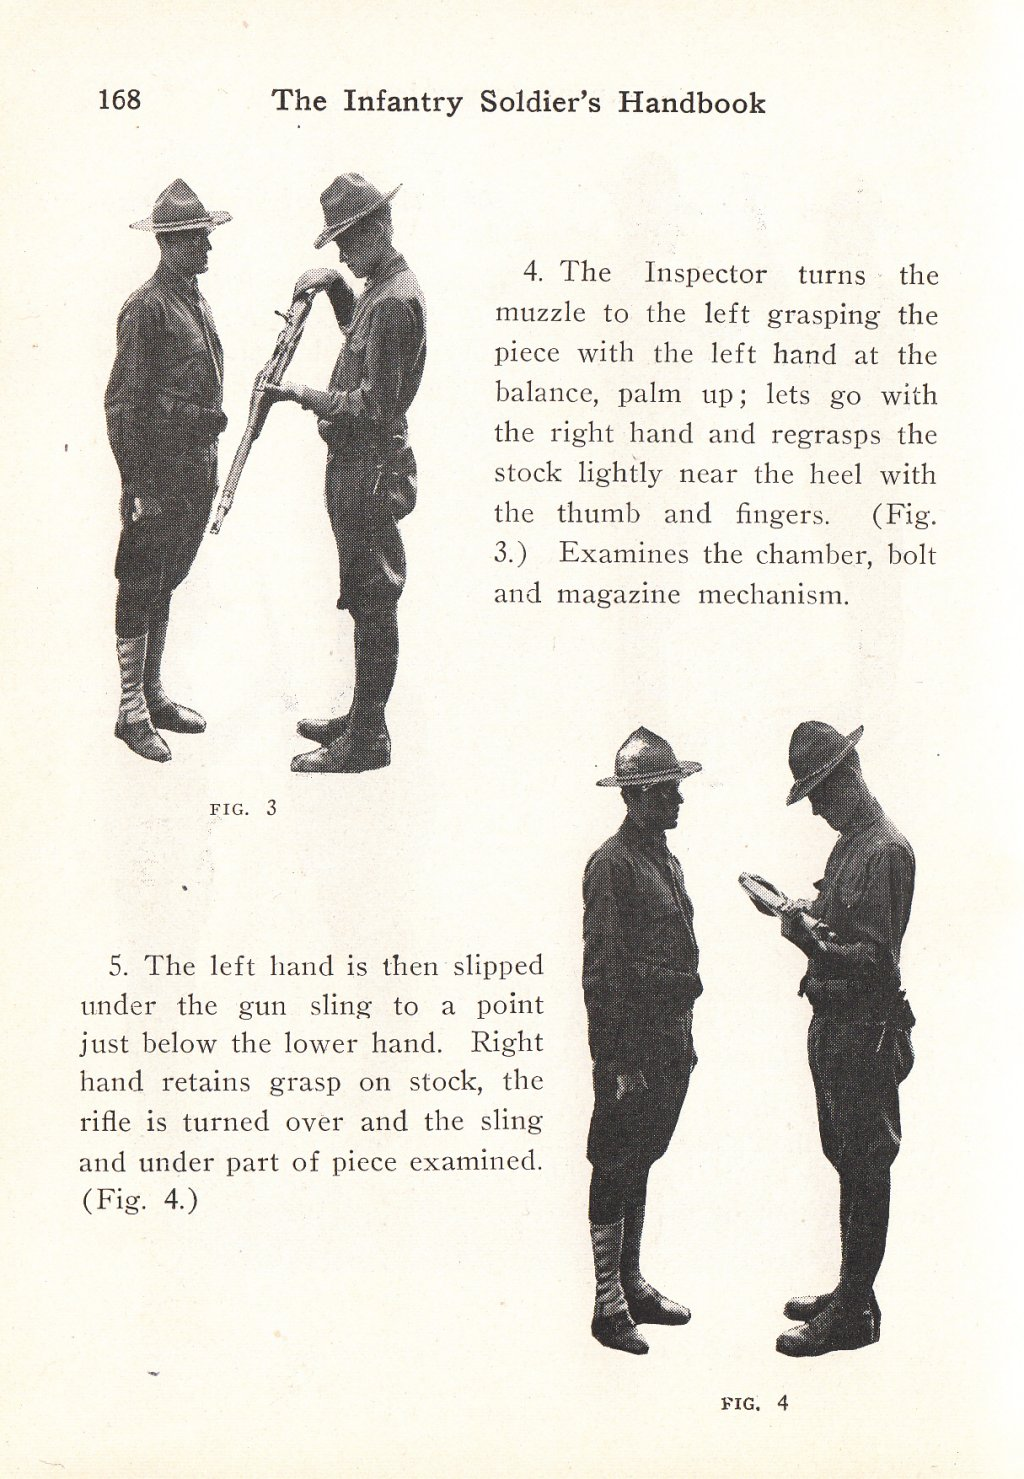 314th Infantry Regiment - Infantry Soldiers Handbook - Waldron - Page 168